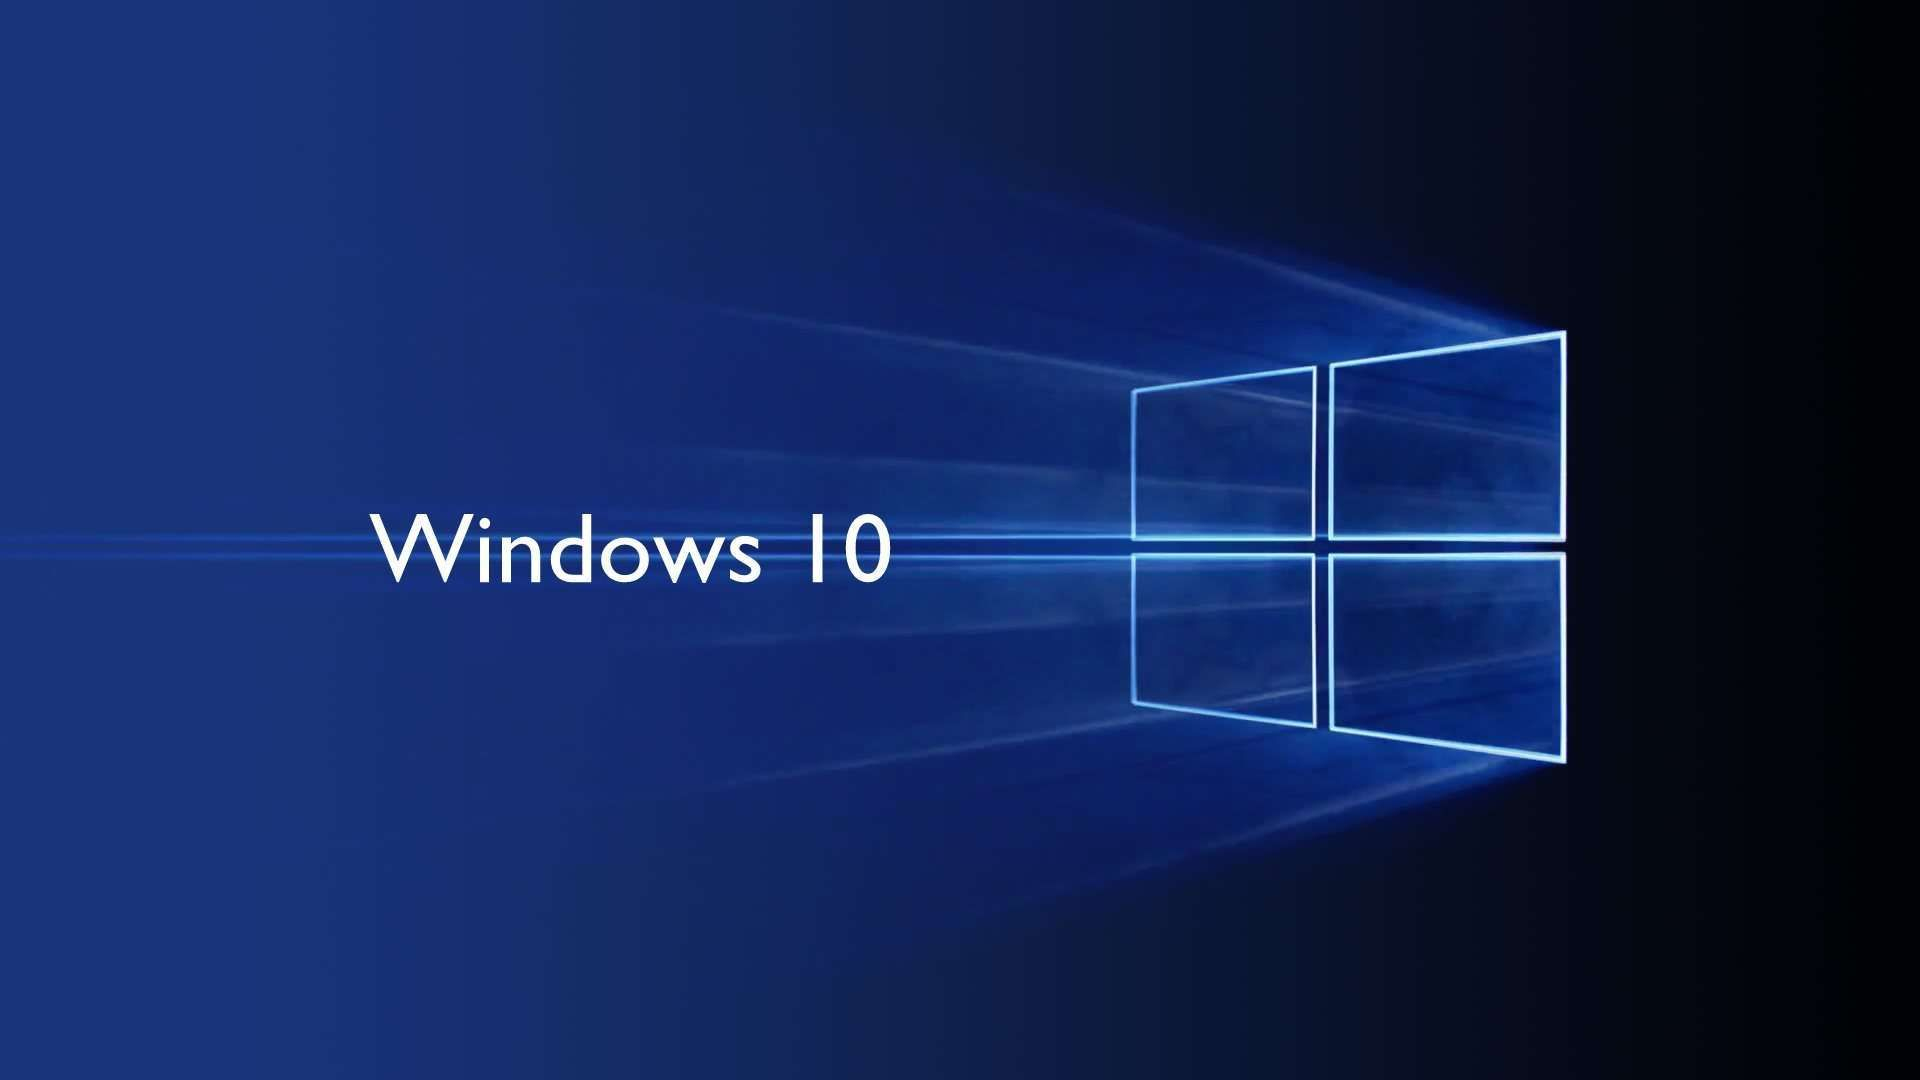 Windows 10 Wallpaper Hd For Desktop Microsoft Wallpaper Windows 10 Windows 10 Microsoft